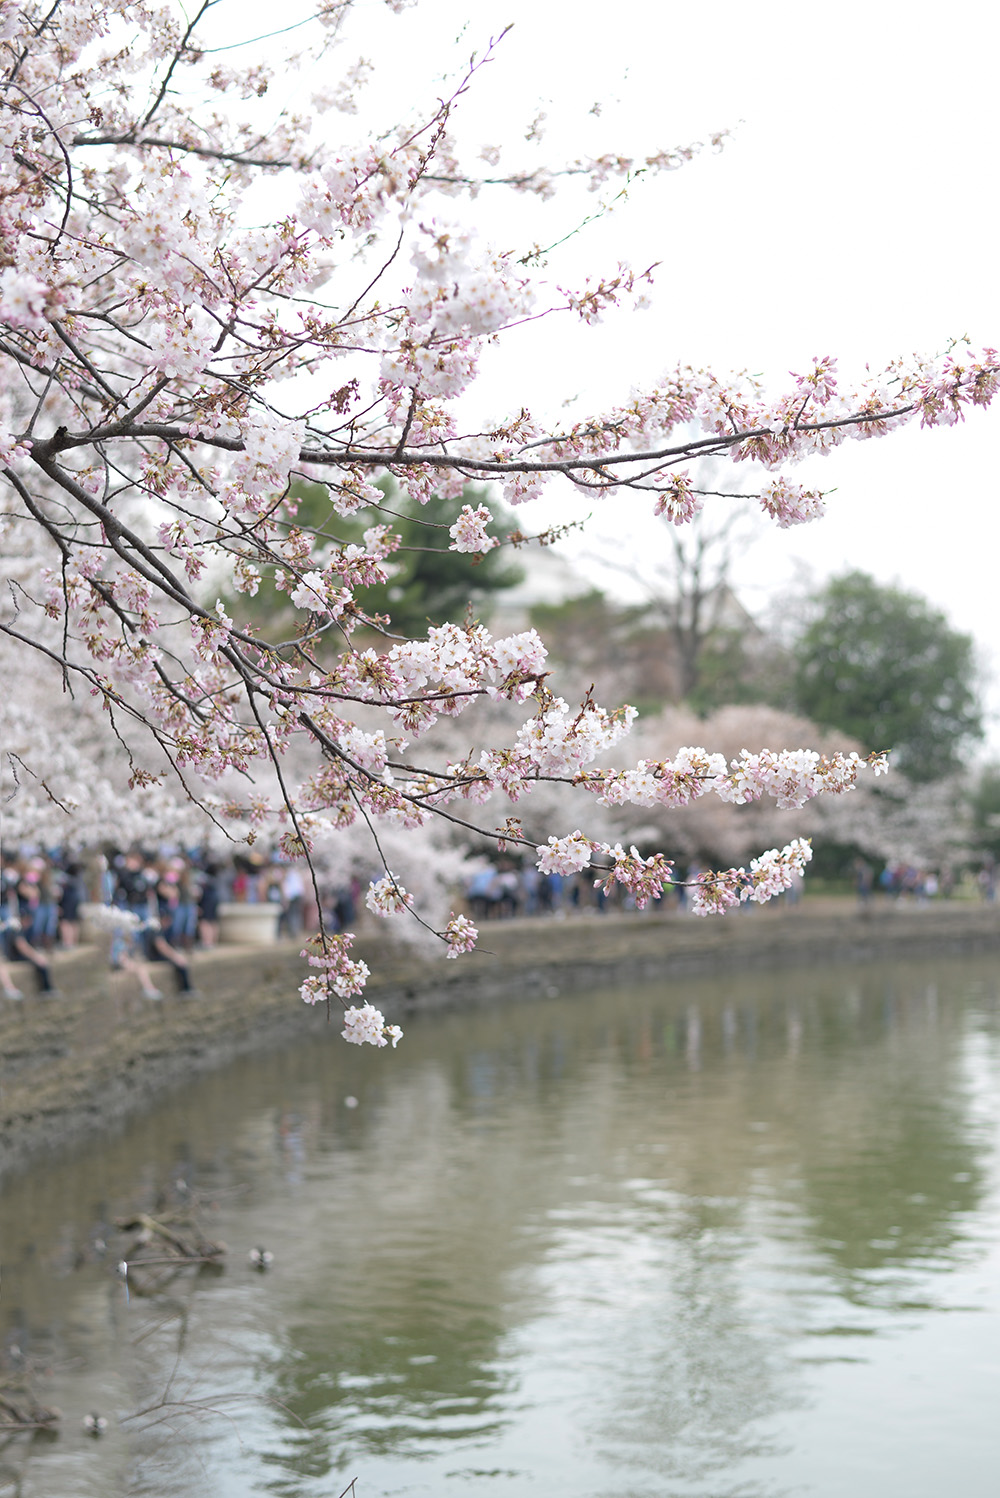 Why you need to see the Cherry Blossoms in Washington, D.C.